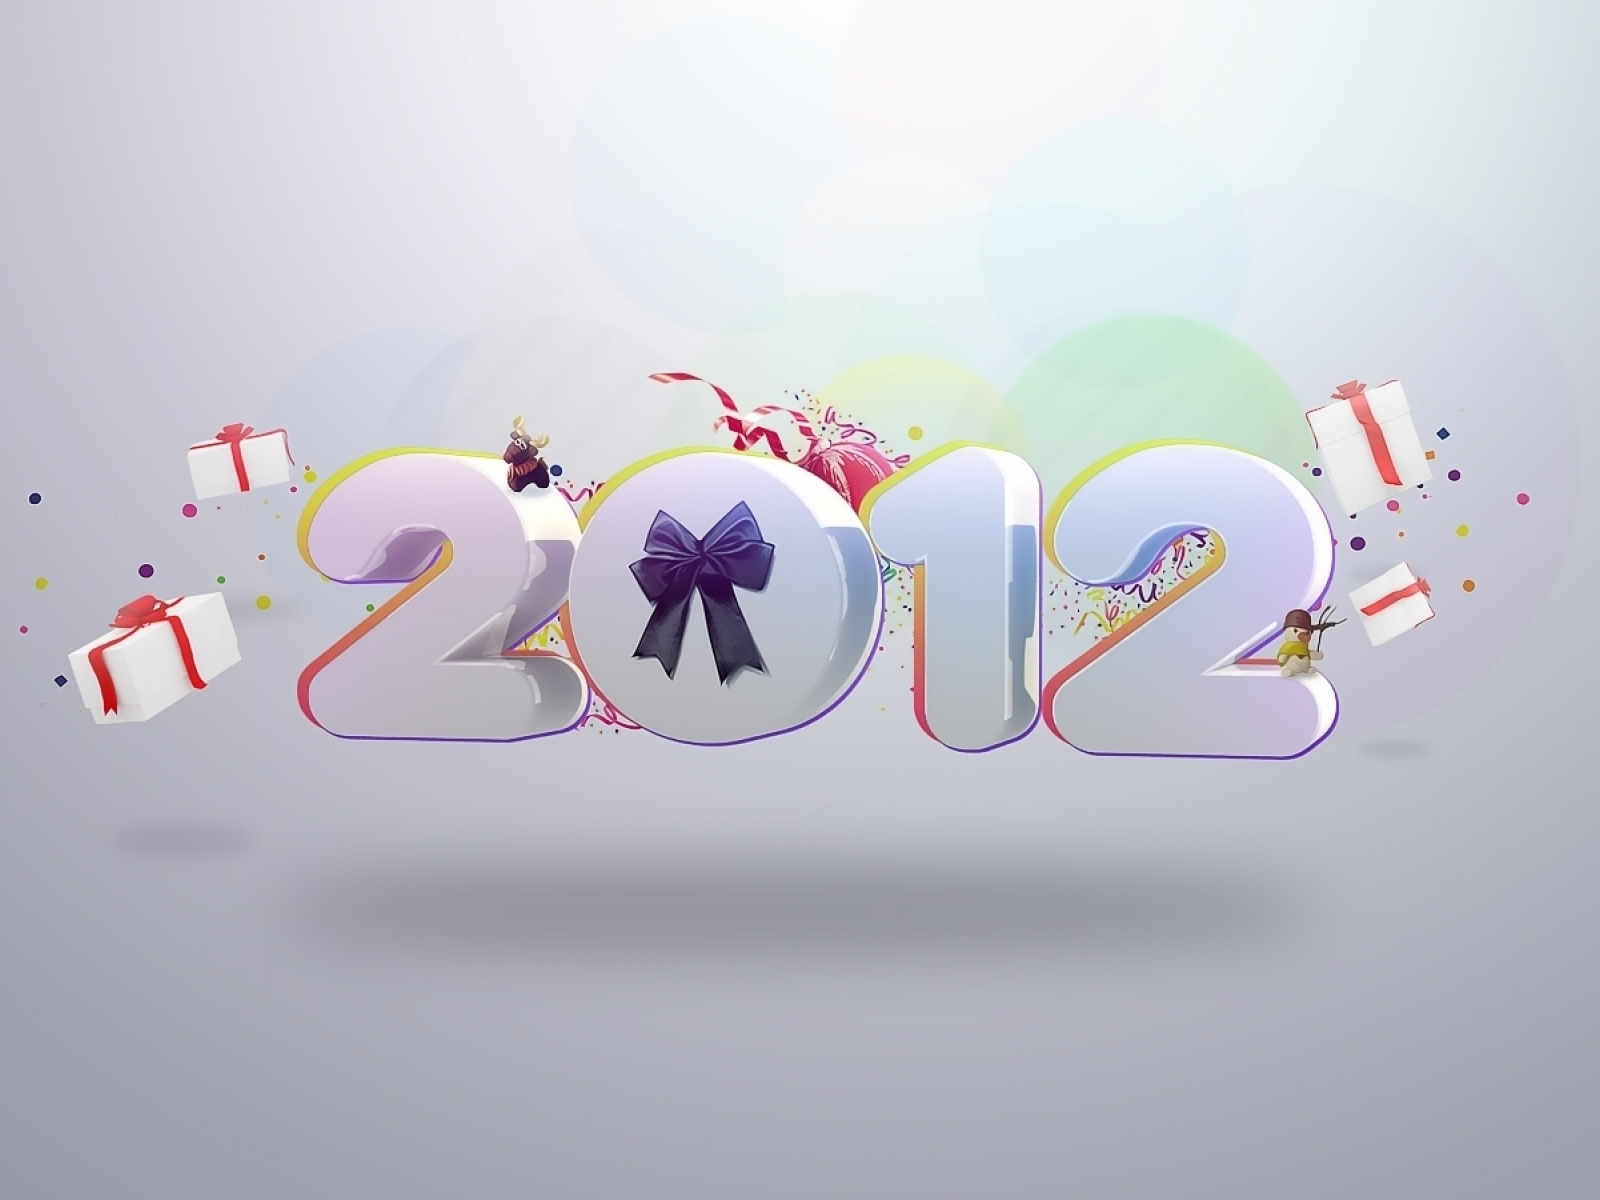 2012 Year Celebration for 1600 x 1200 resolution